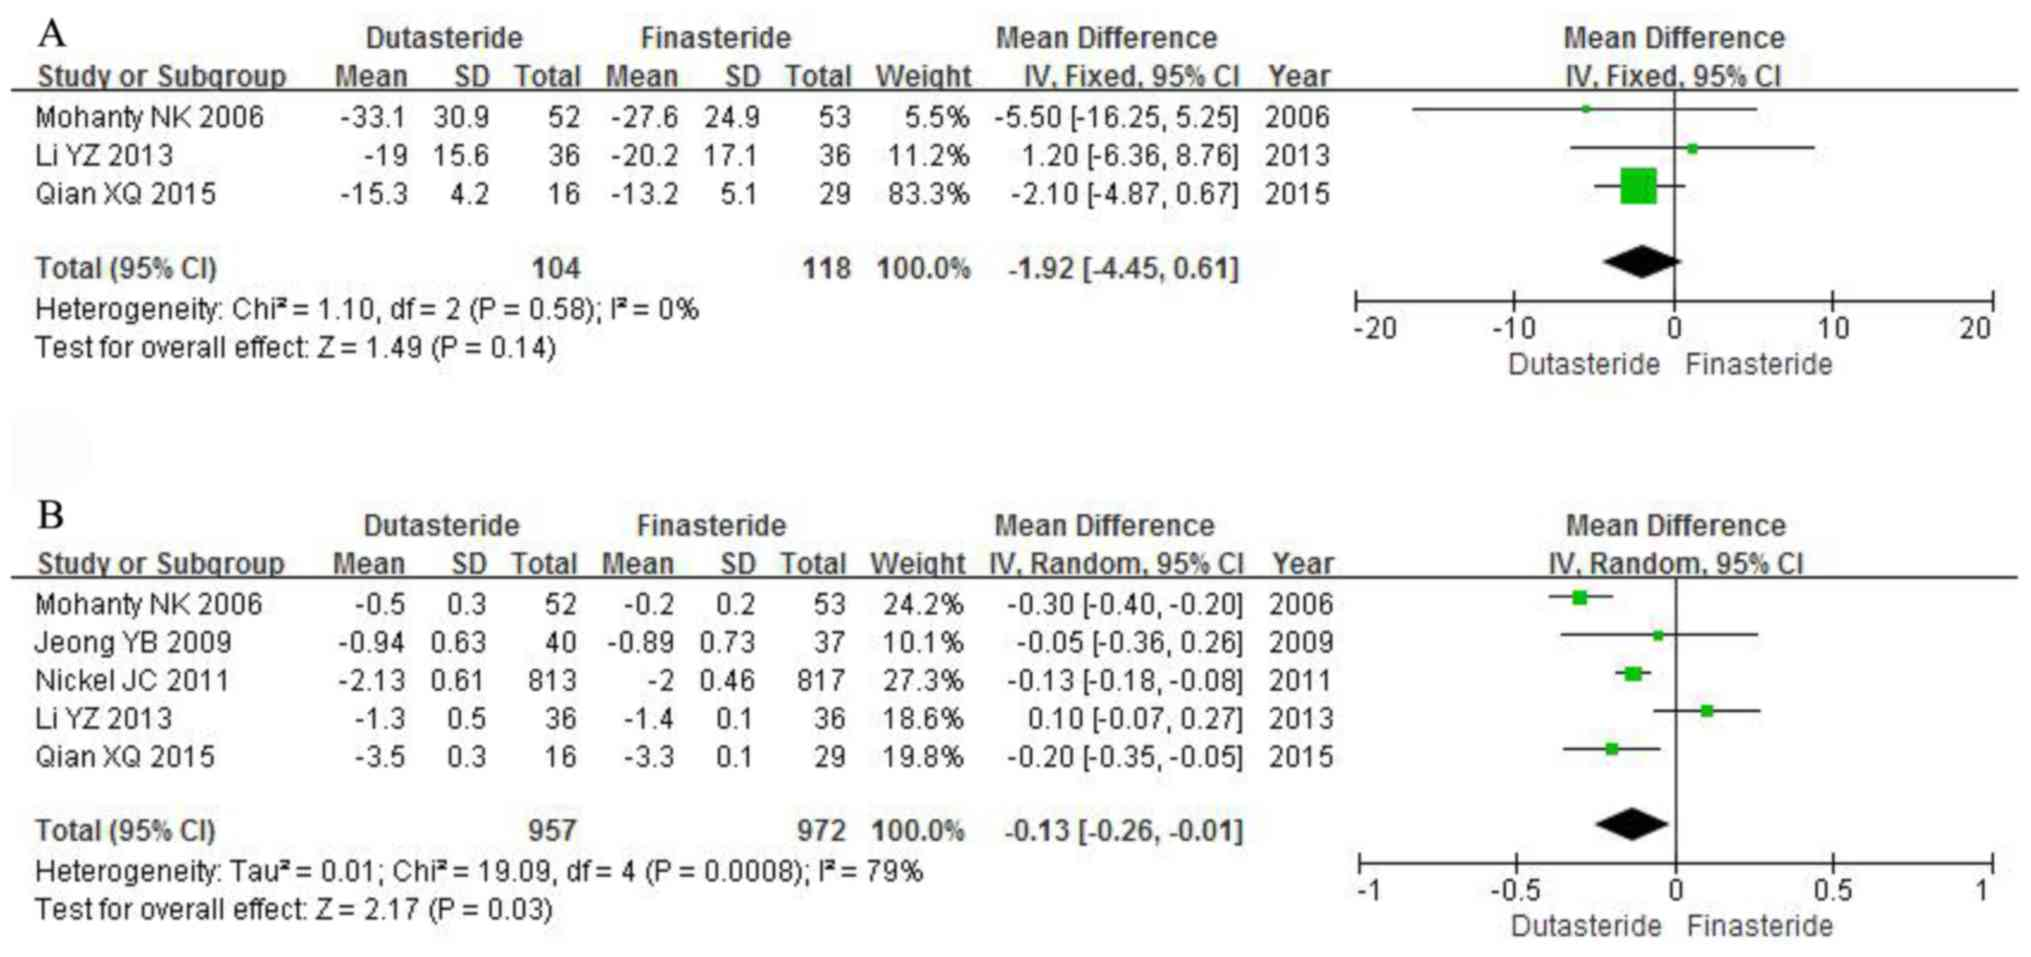 Efficacy And Safety Of Dutasteride Compared With Finasteride In Treating Males With Benign Prostatic Hyperplasia A Meta Analysis Of Randomized Controlled Trials